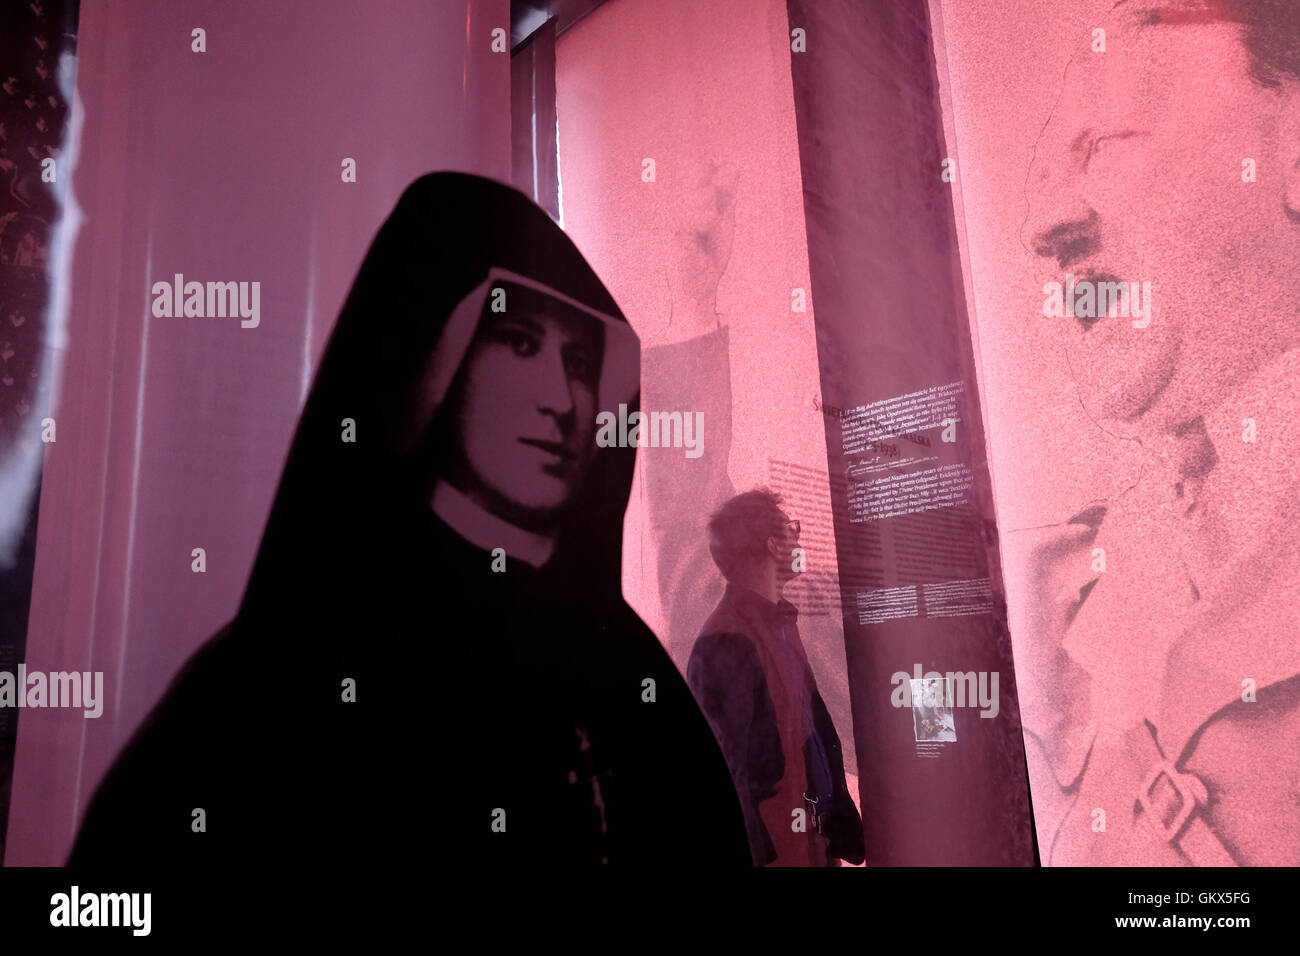 People pass through WW2 retrospective  installation in the Srodmiescie district of Warsaw, Poland - Stock Image